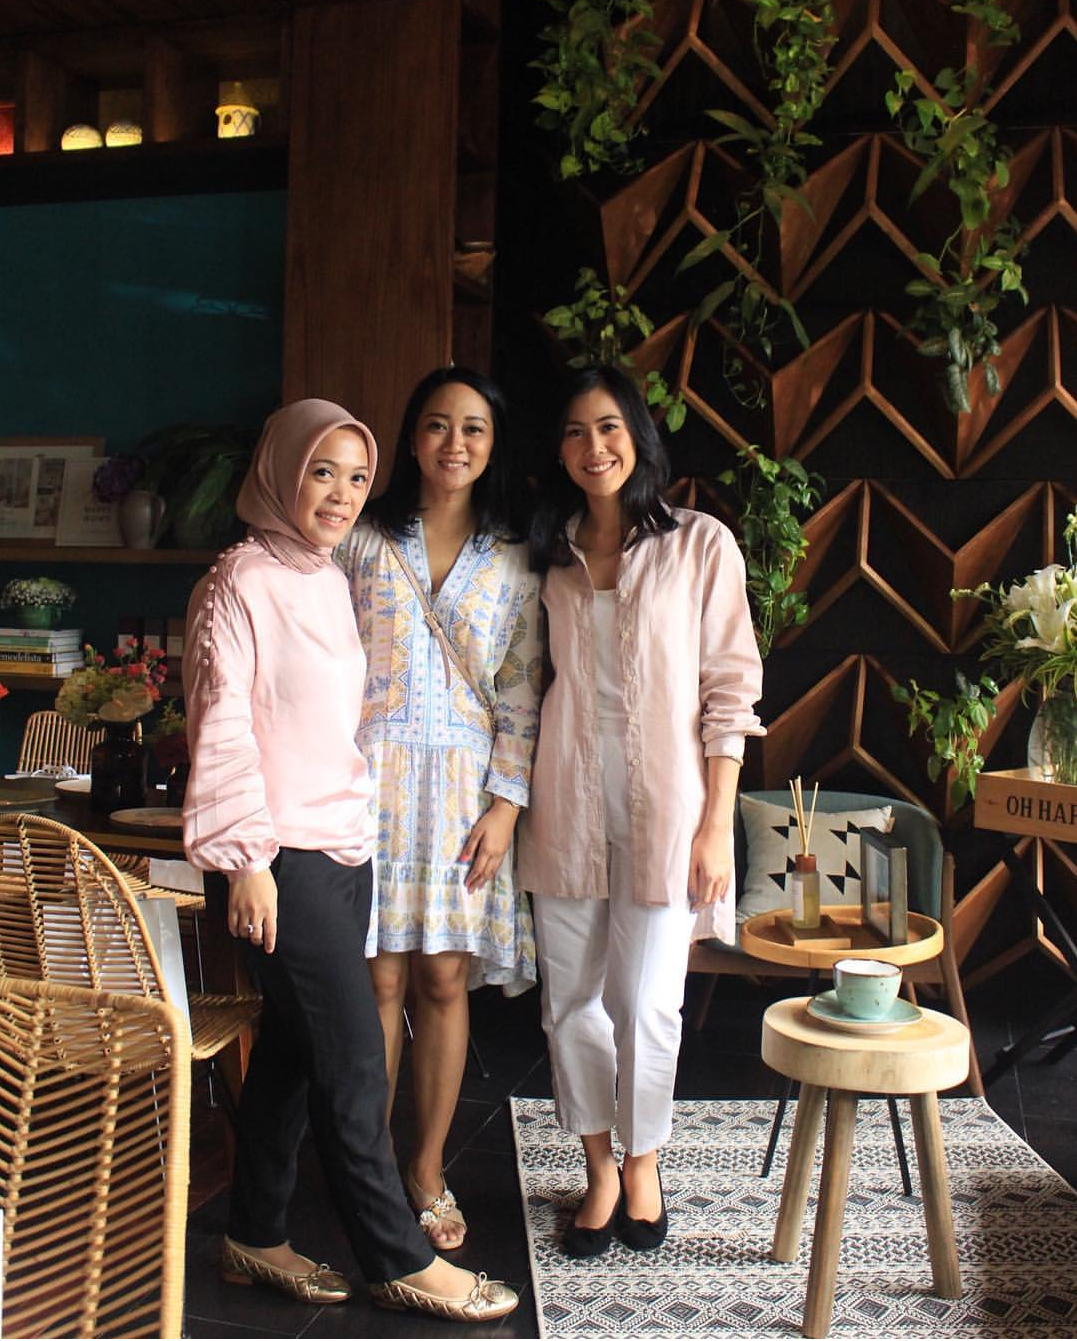 Special thanks untuk team Camani - wouldn't get here without your generous support, love and friendship! :)